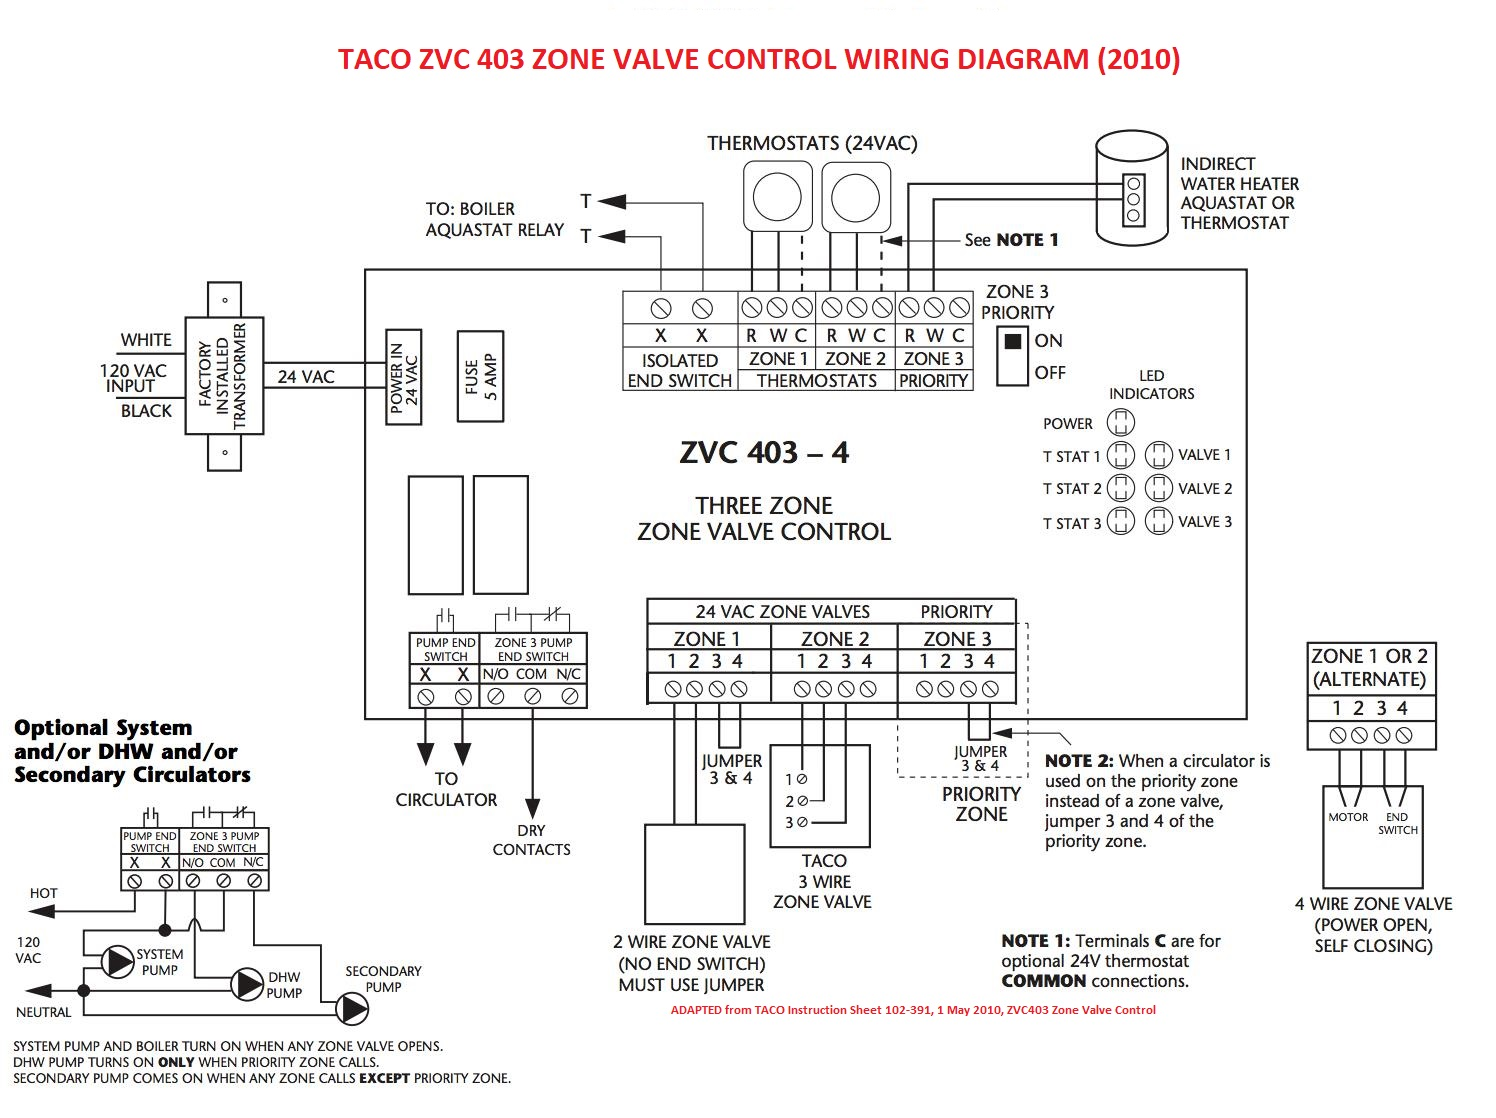 taco wiring diagram opel astra h radio zone valve installation and instructions guide to